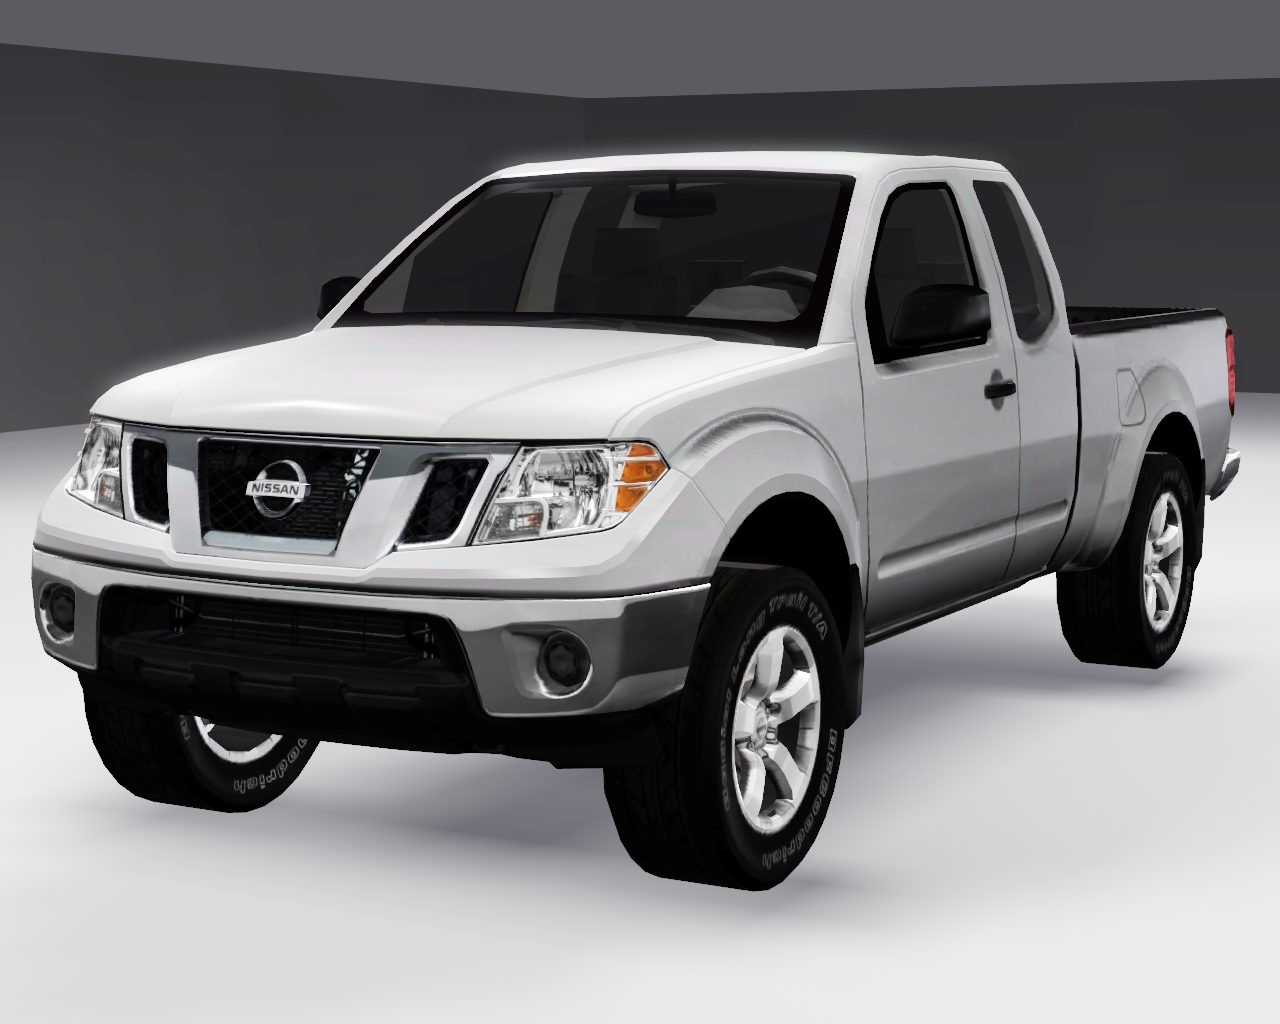 2010 Nissan Frontier by Fresh-Prince